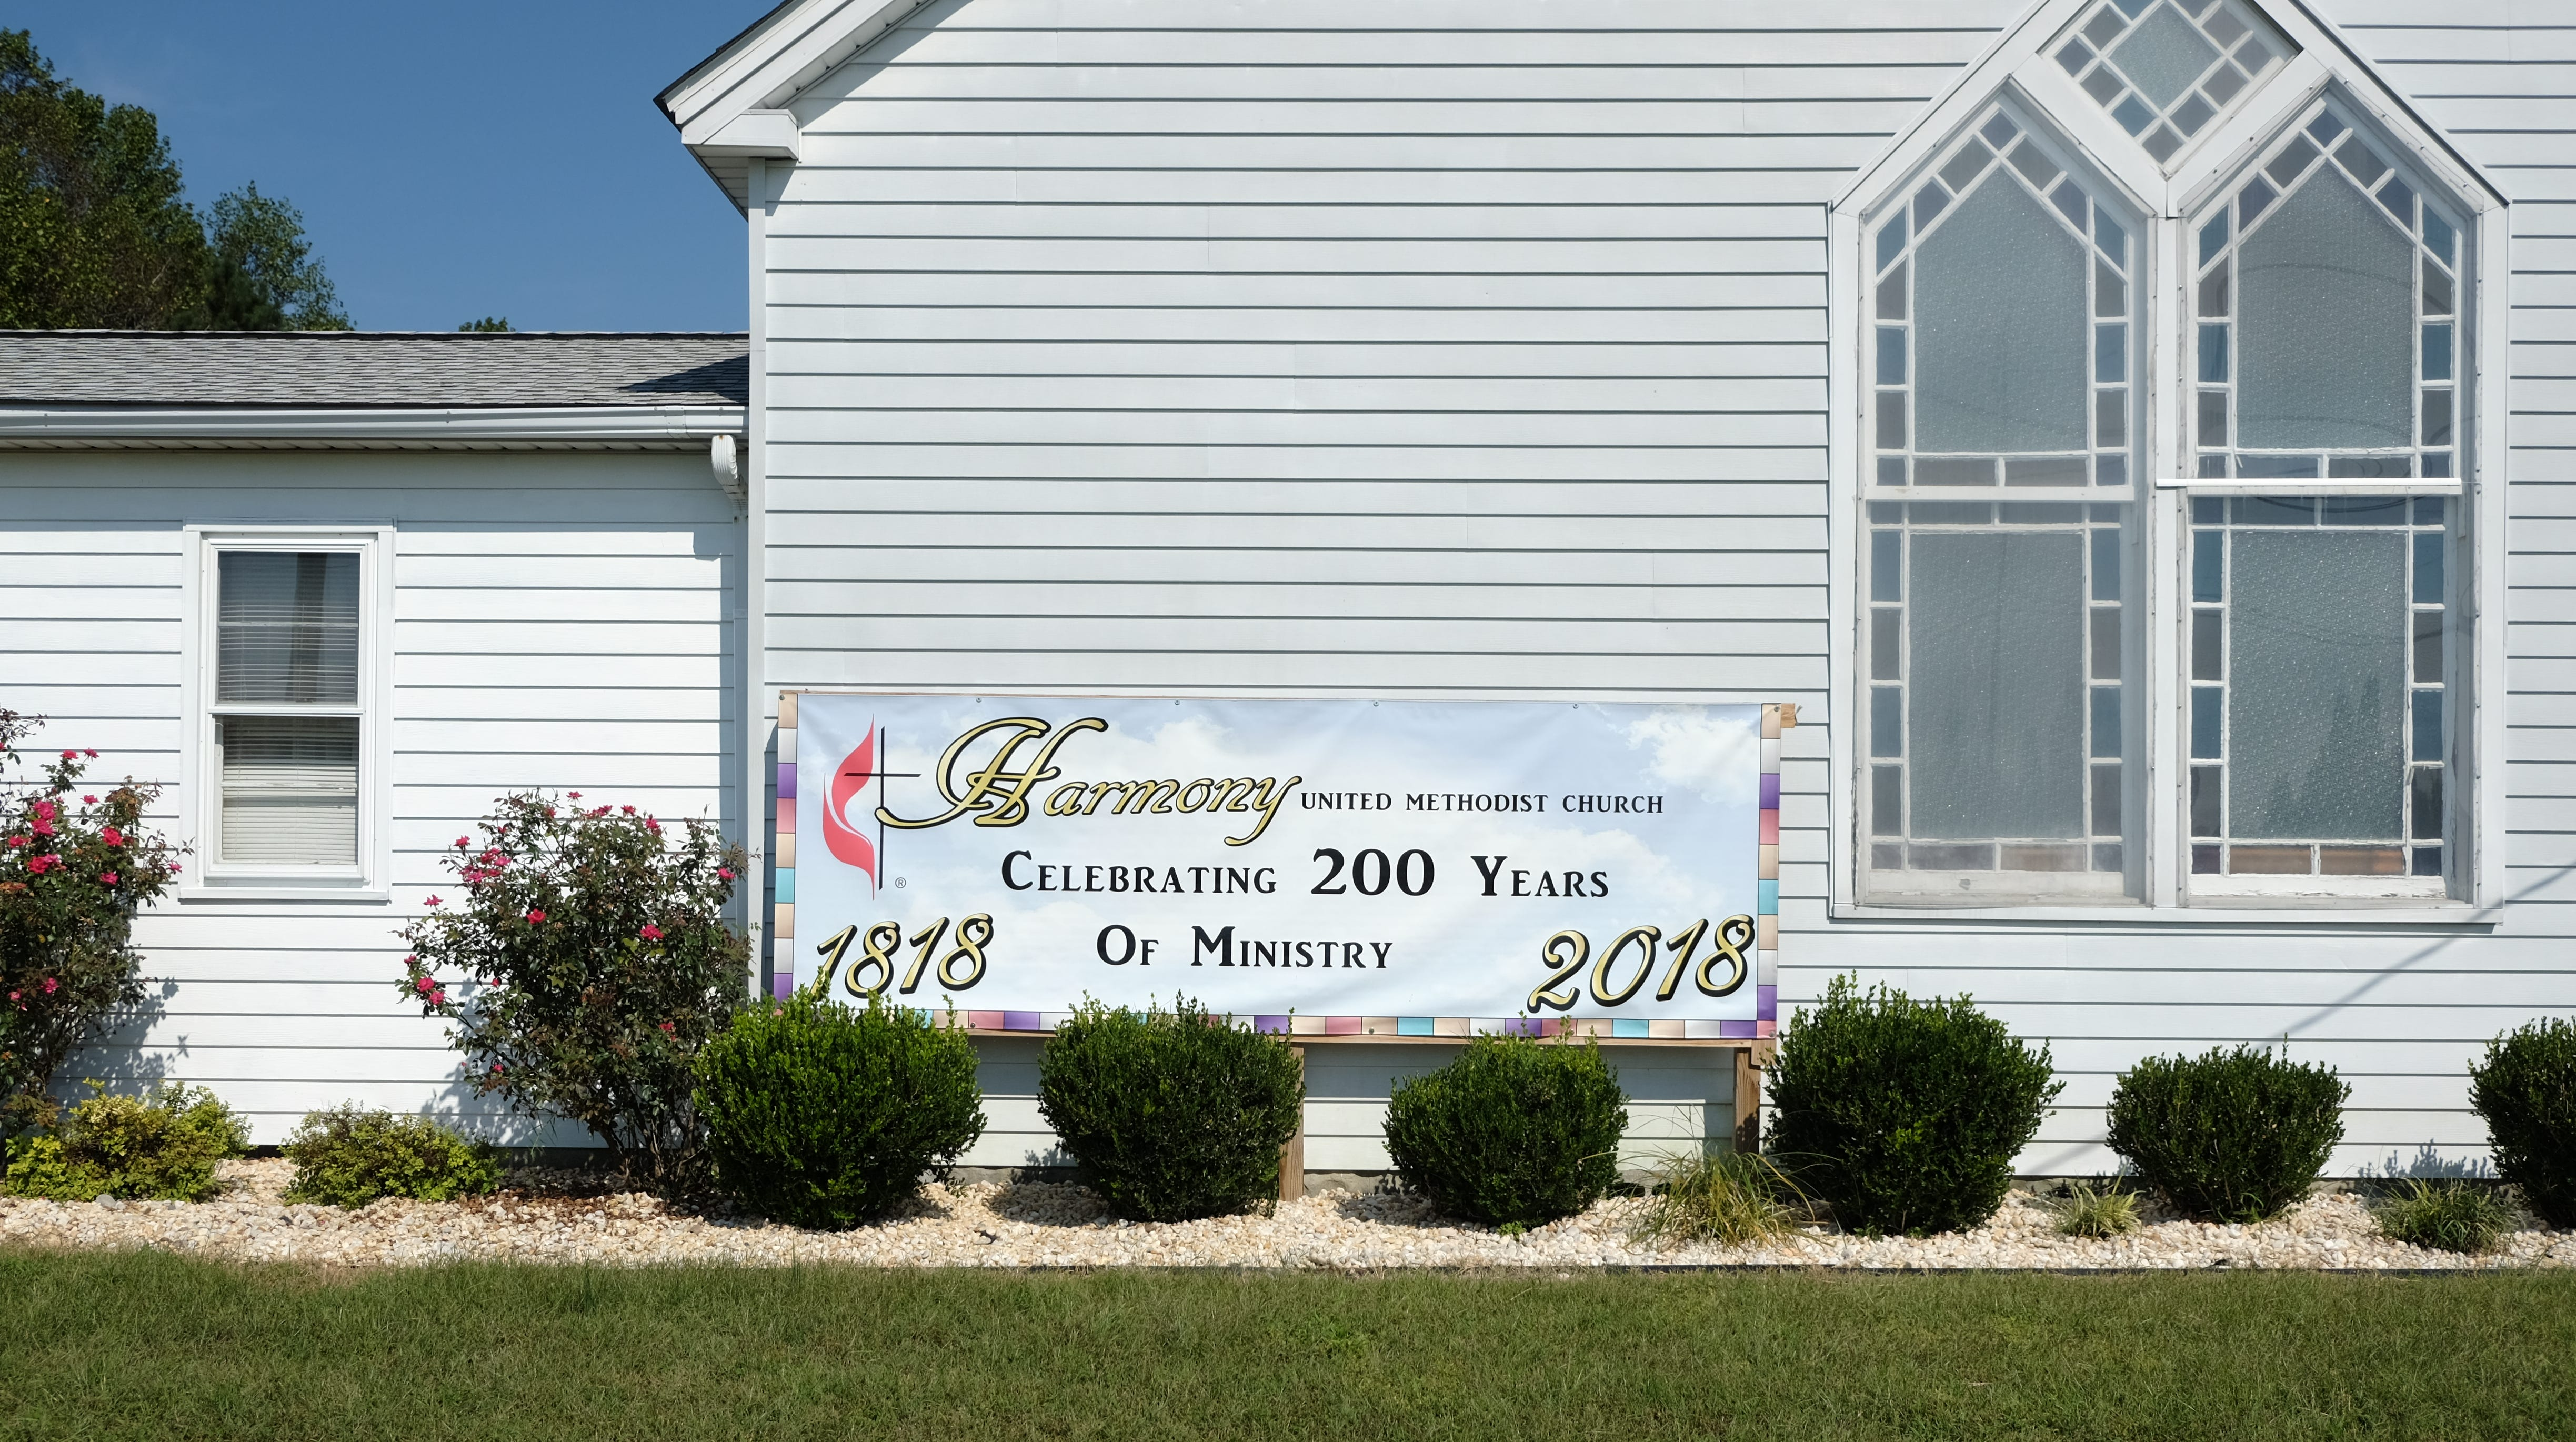 Harmony United Methodist Church in Millsboro is celebrating its 200th anniversary as a congregation on Oct. 14.